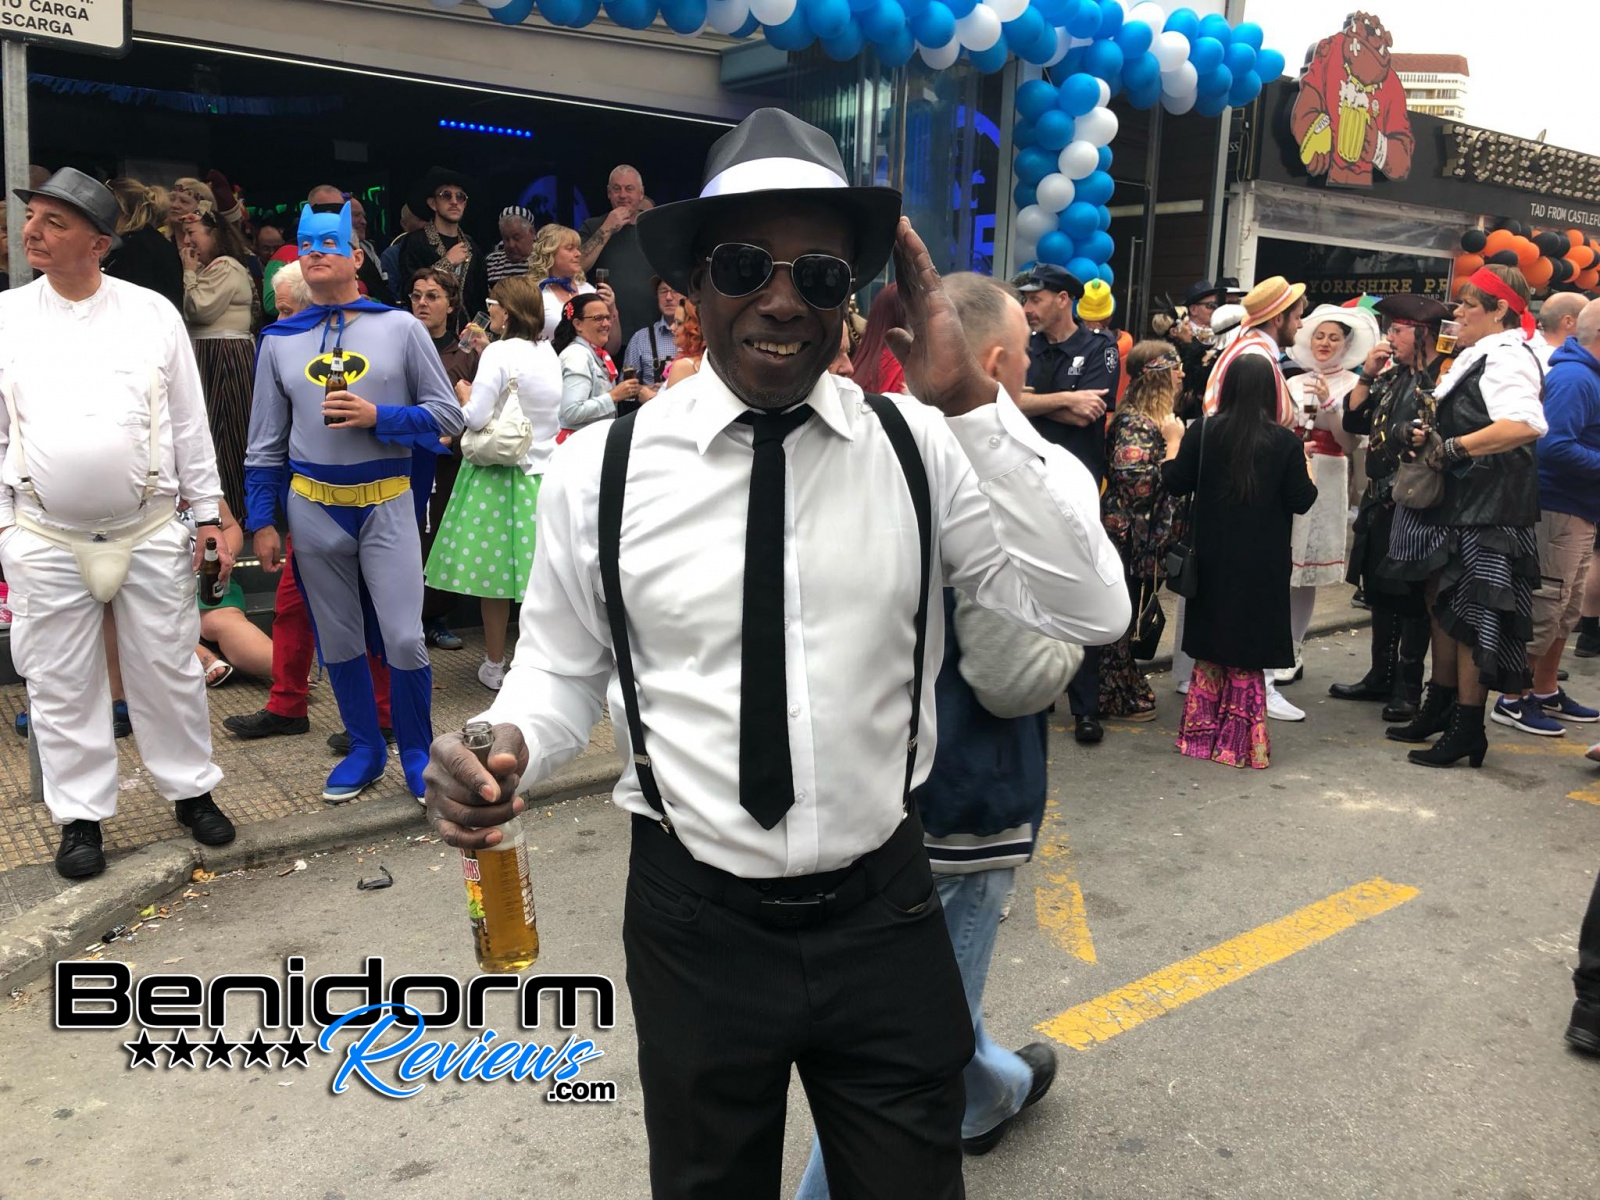 Benidorm-Fiestas-2019-Fancy-Dress-57